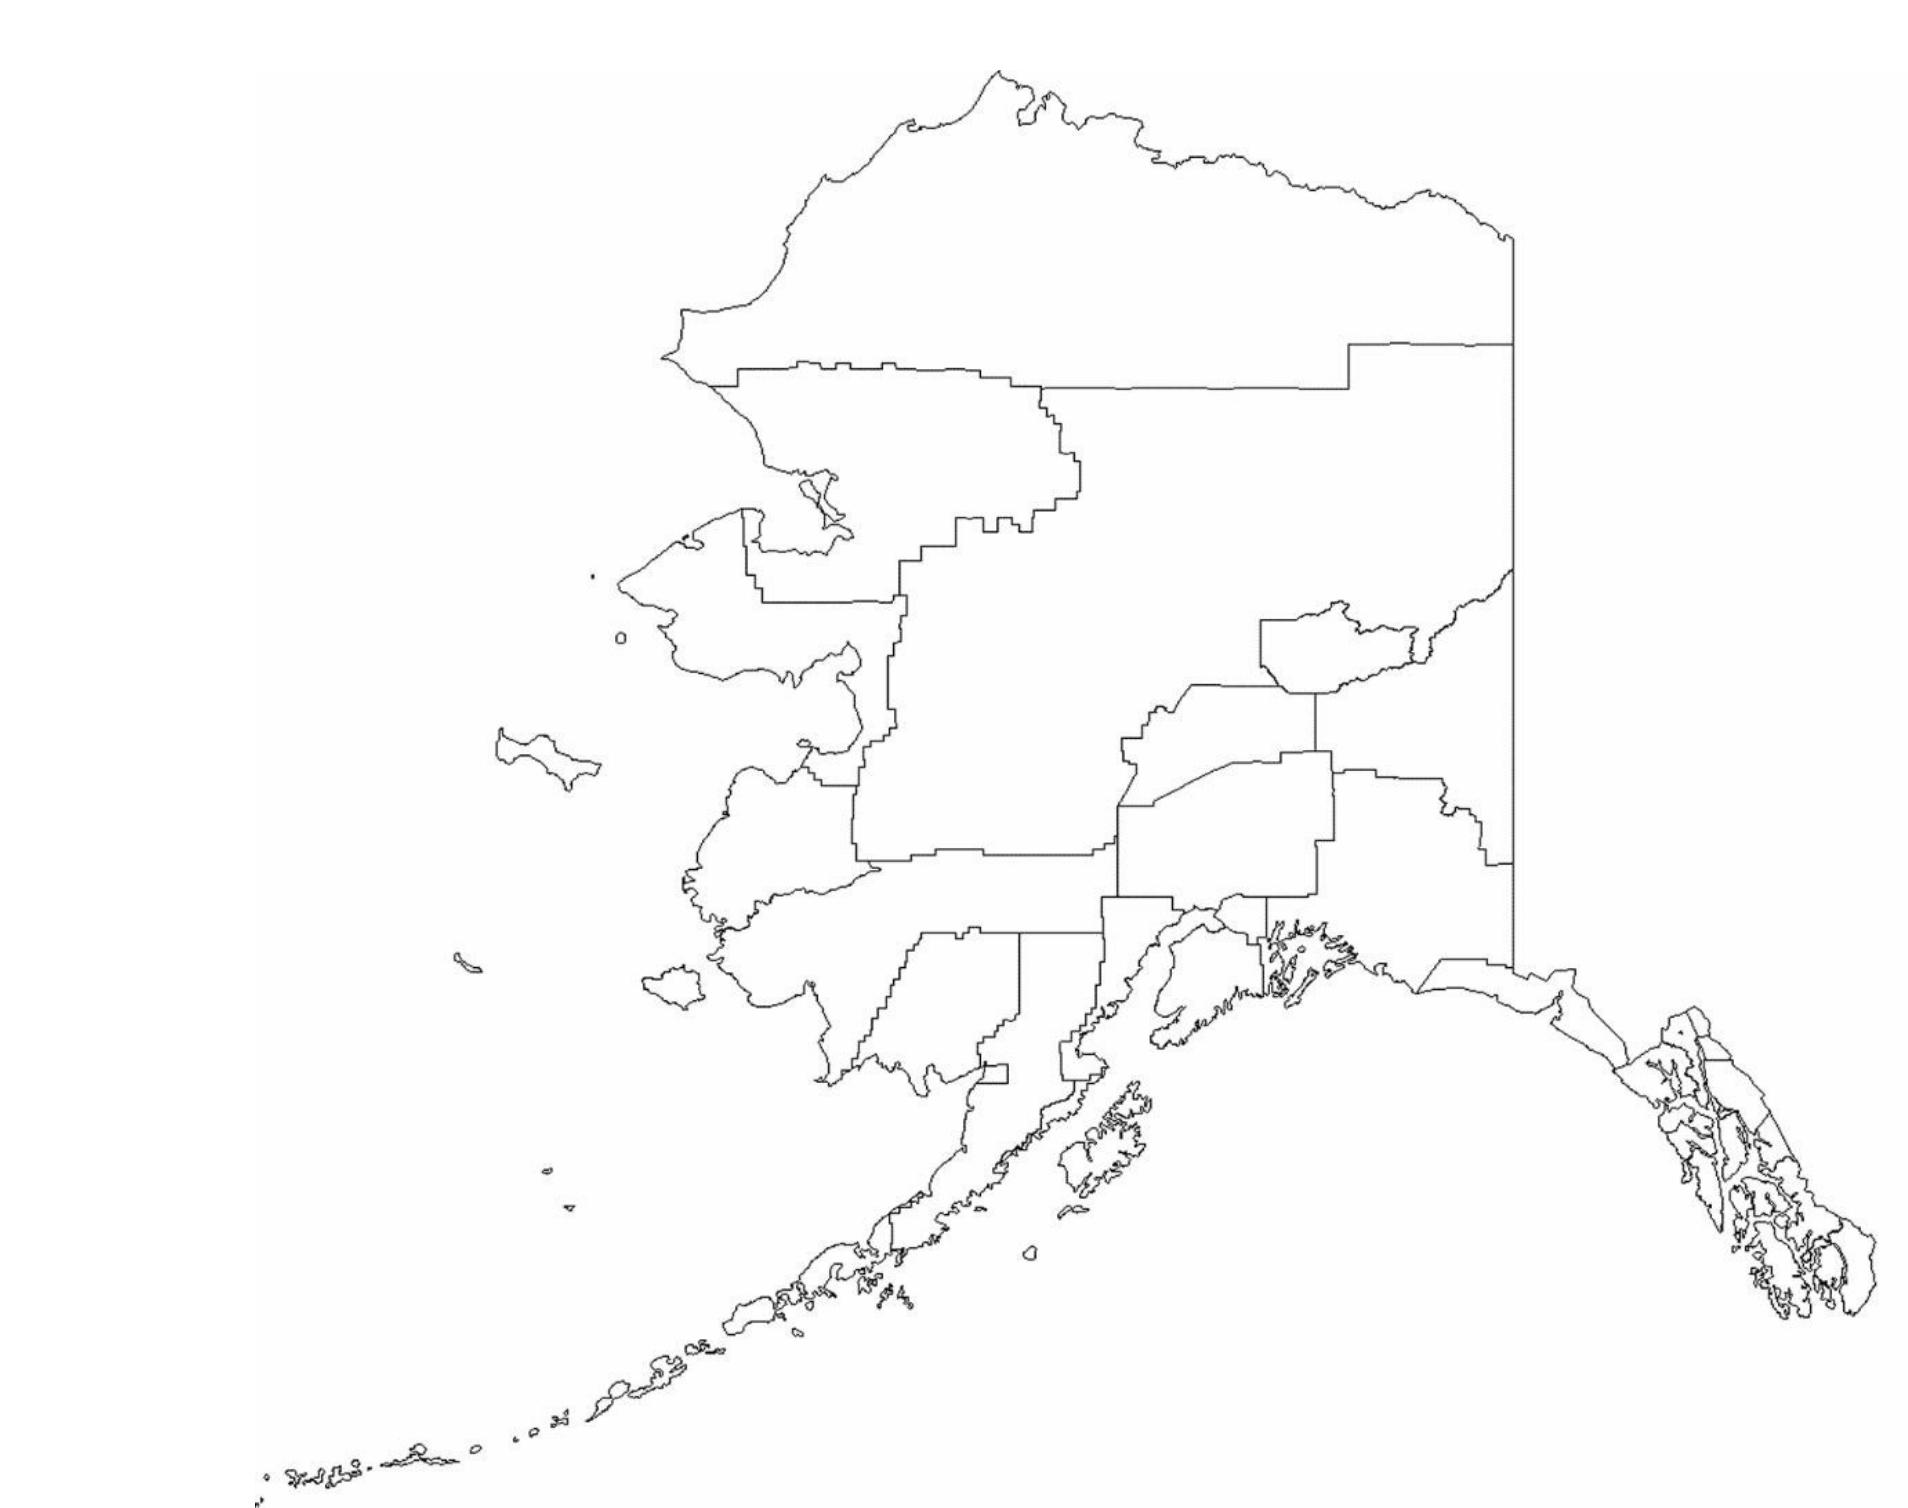 maps scholarship with Free Blank Alaska Borough Map on Map as well 21979937 likewise Spsc additionally Cmp also puter Information Tech Graphics.